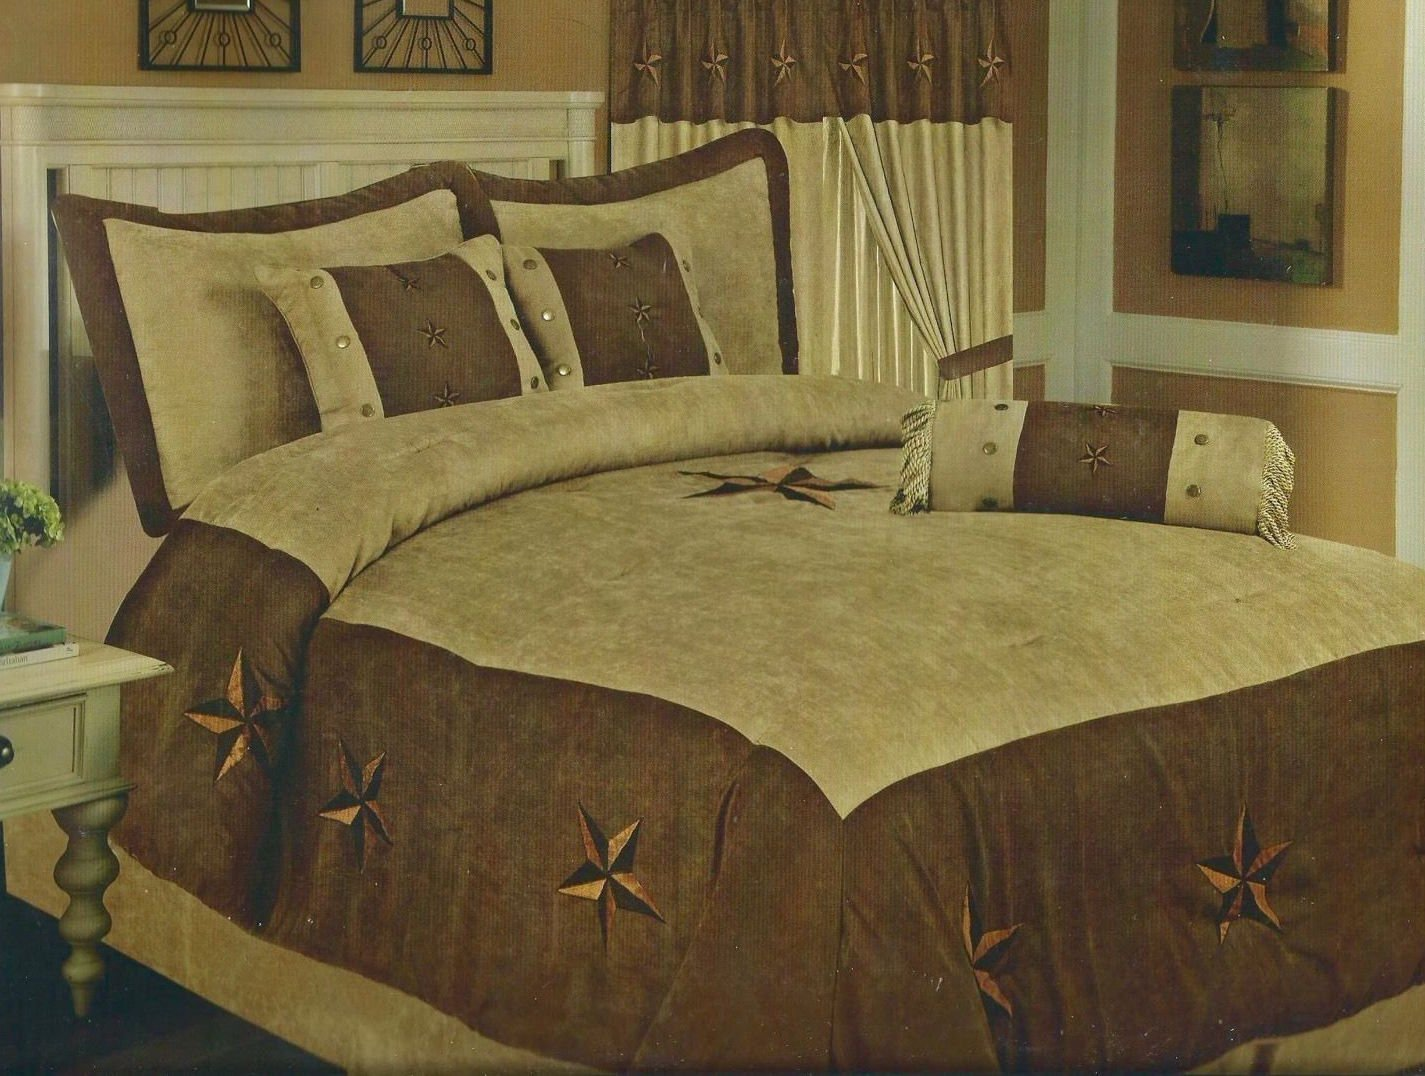 for approved jcpenney oversized with home bedding happy decor eva designs comforter retail c dallas j from interior penney penneys jcp queen s longoria sets news